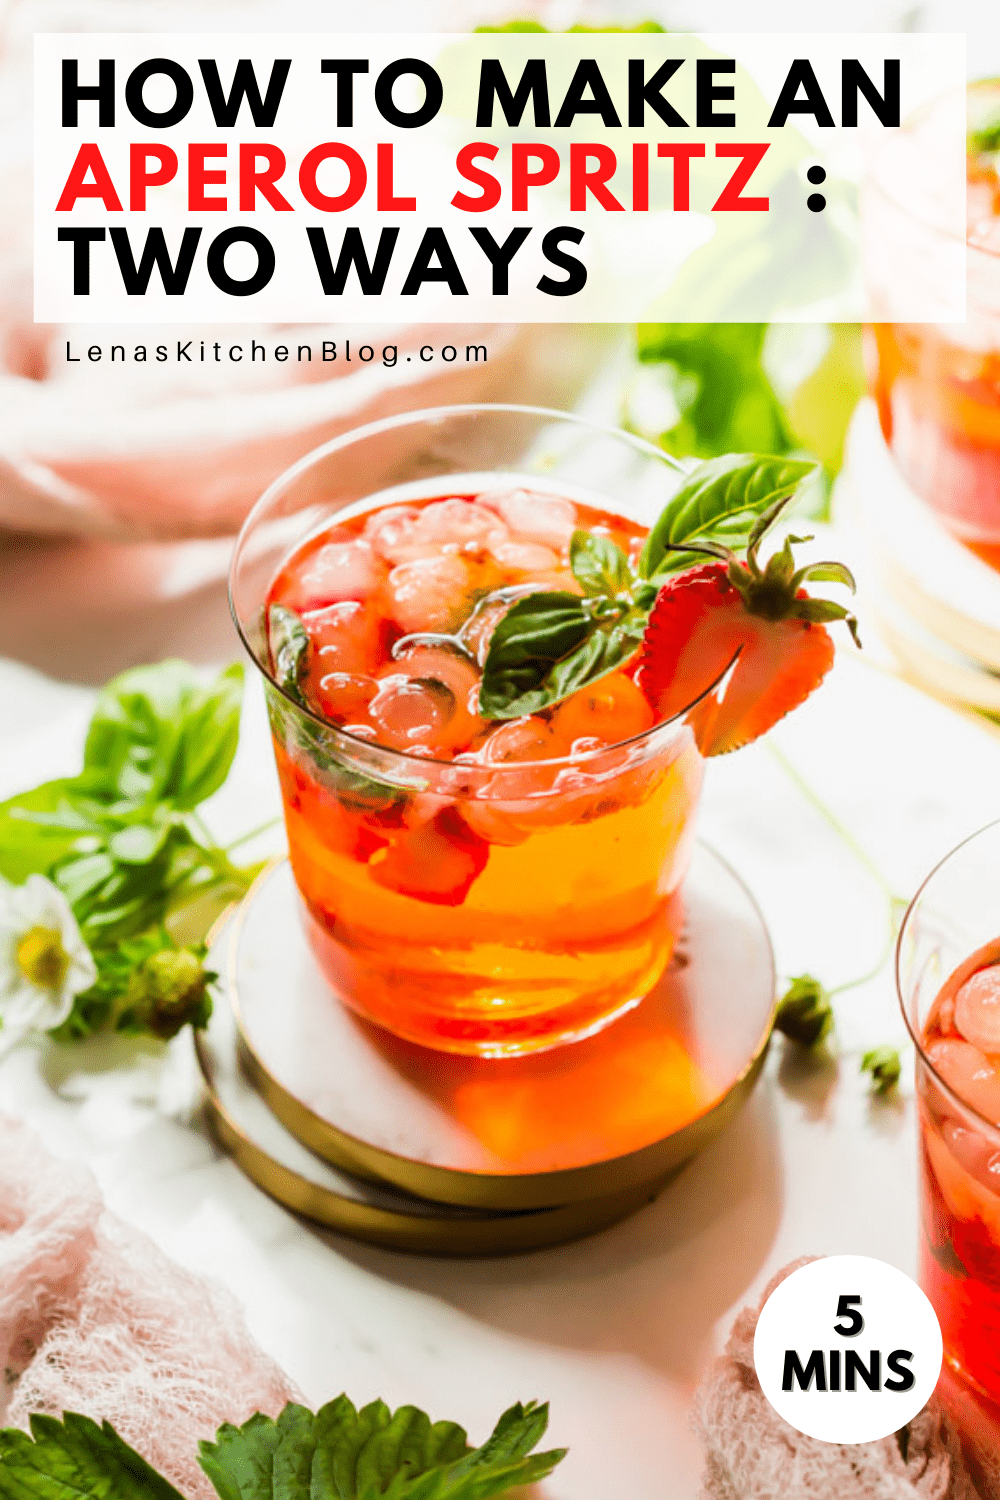 pinterest image of a red drink with strawberries and basil